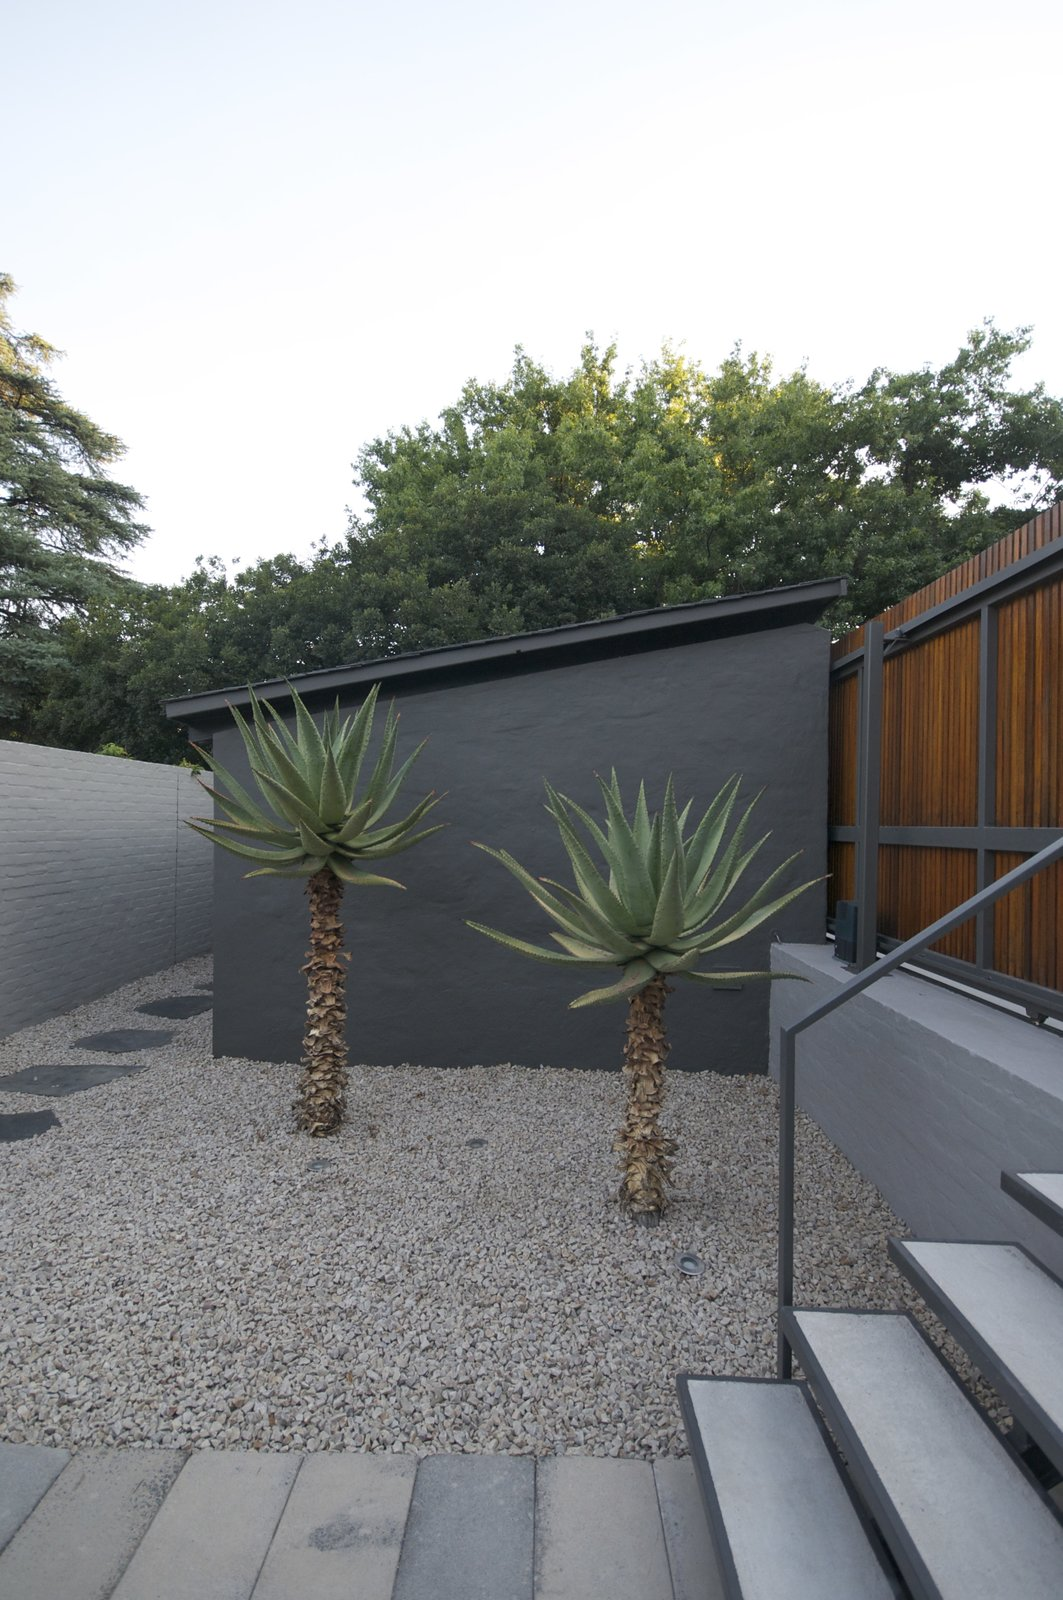 Outdoor, Walkways, Hardscapes, Front Yard, Garden, Gardens, and Shrubs In the entrance courtyard, two large aloes forms a green contrast to the otherwise grey color palette.  Grey House